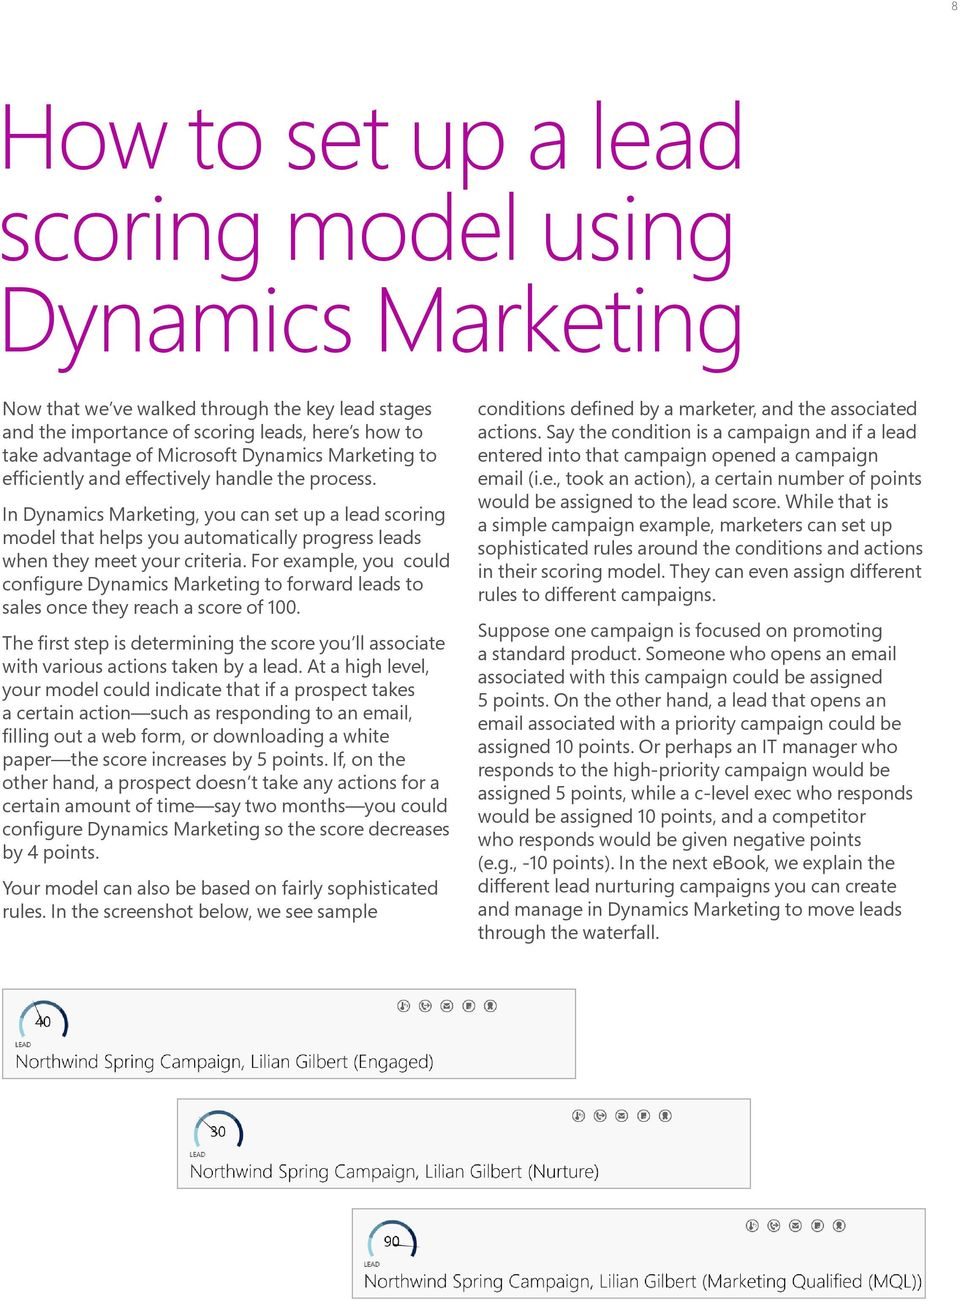 For example, you could configure Dynamics Marketing to forward leads to sales once they reach a score of 100.